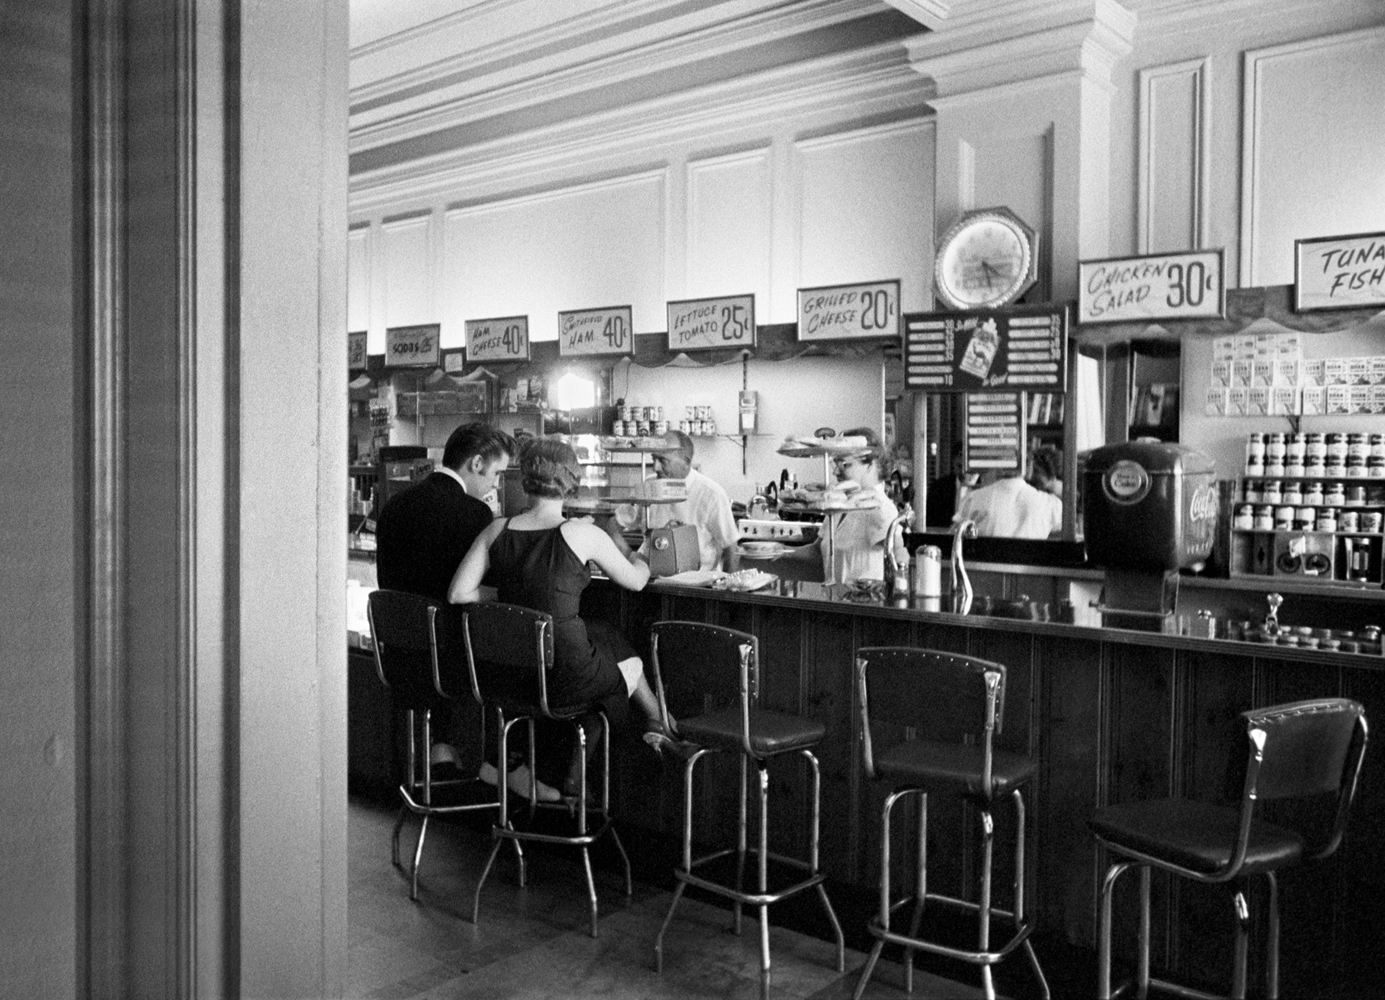 June 30, 1956. Coffee shop at the Jefferson Hotel, Richmond, Virginia. My most popular picture… the New York Times wouldn't put the kiss on their website, but I have sold more of these (titled Grilled Cheese 20 cents) than all my others combined.